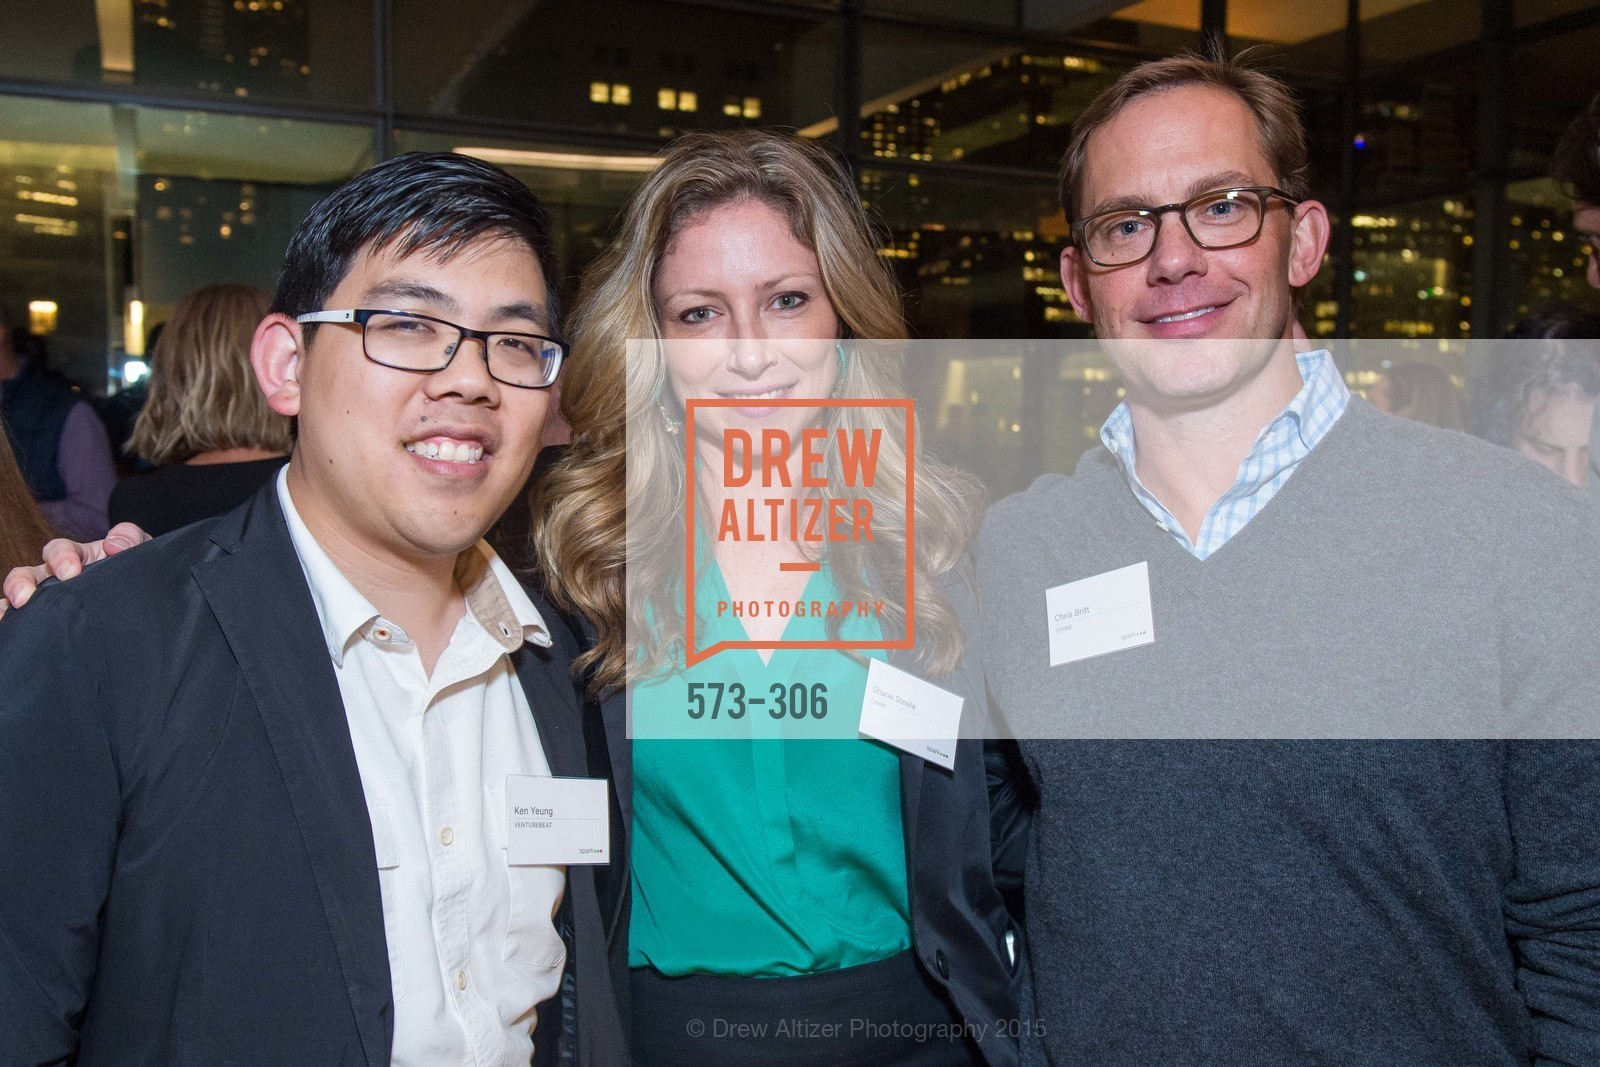 Ken Yeung, Shane Steele, Chris Britt, Sparkpr's Annual Rooftop Soirée, The Battery Penthouse, September 22nd, 2015,Drew Altizer, Drew Altizer Photography, full-service agency, private events, San Francisco photographer, photographer california